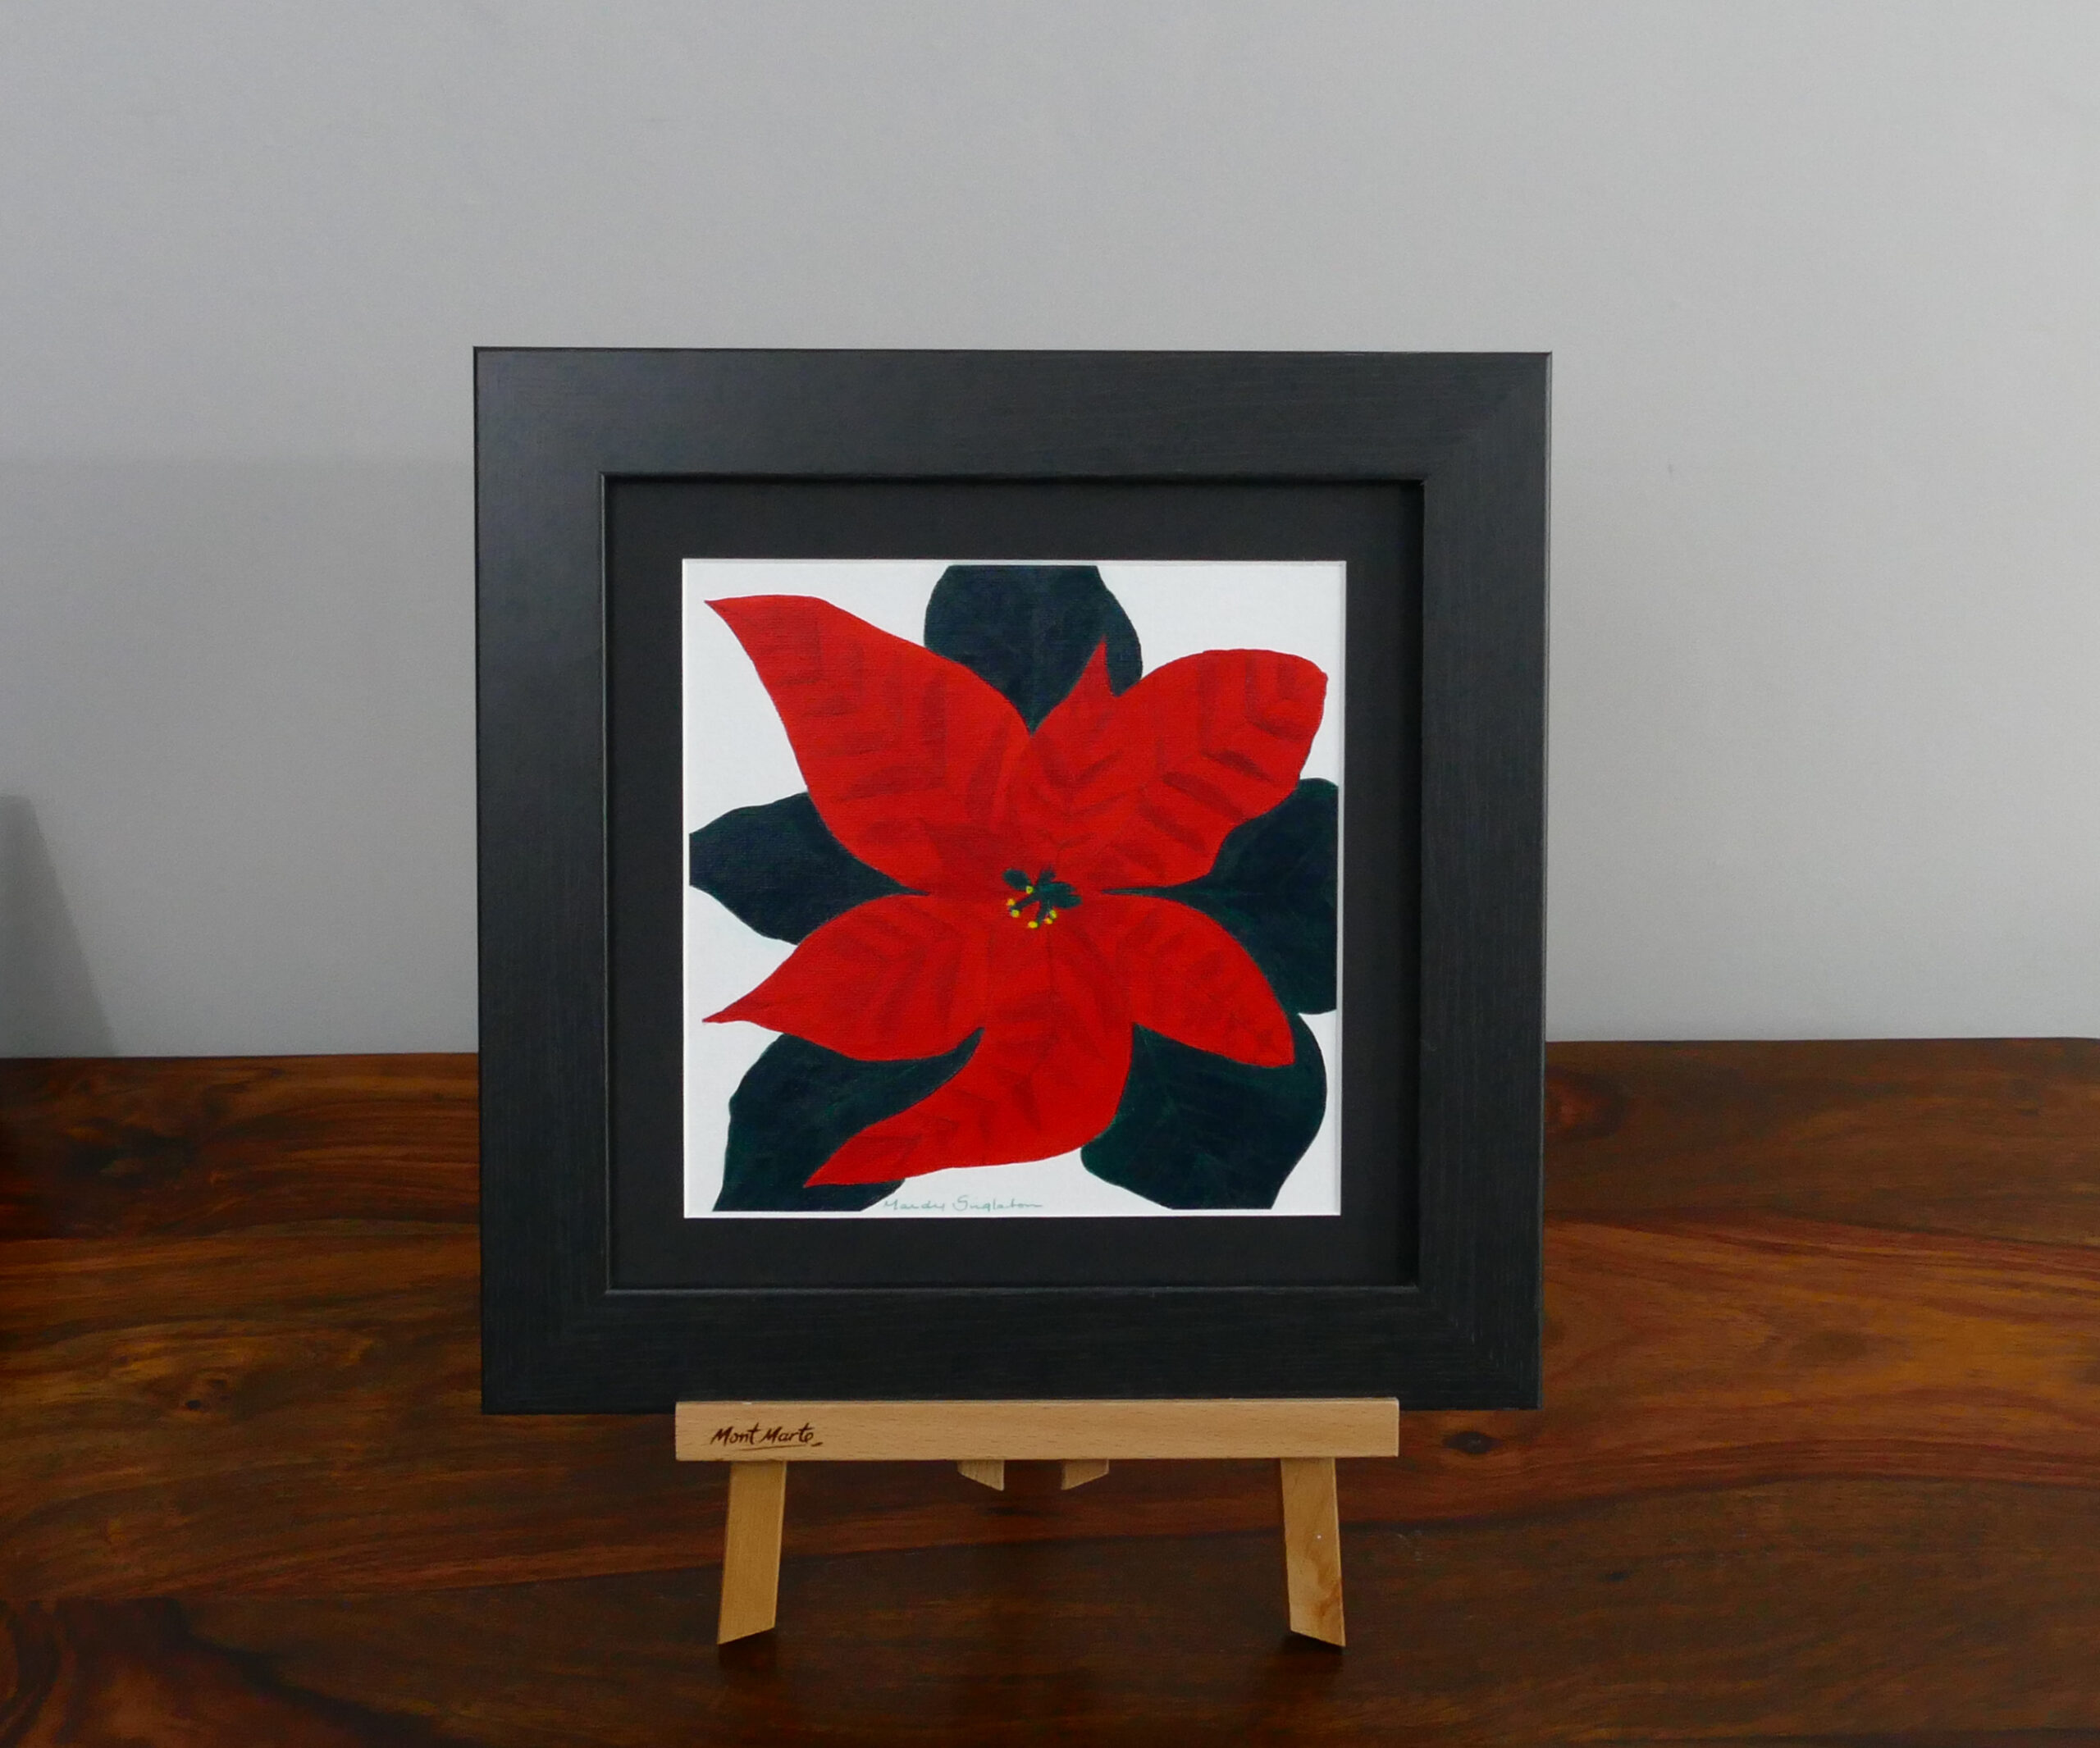 Poinsettia acrylic painting, available to purchase